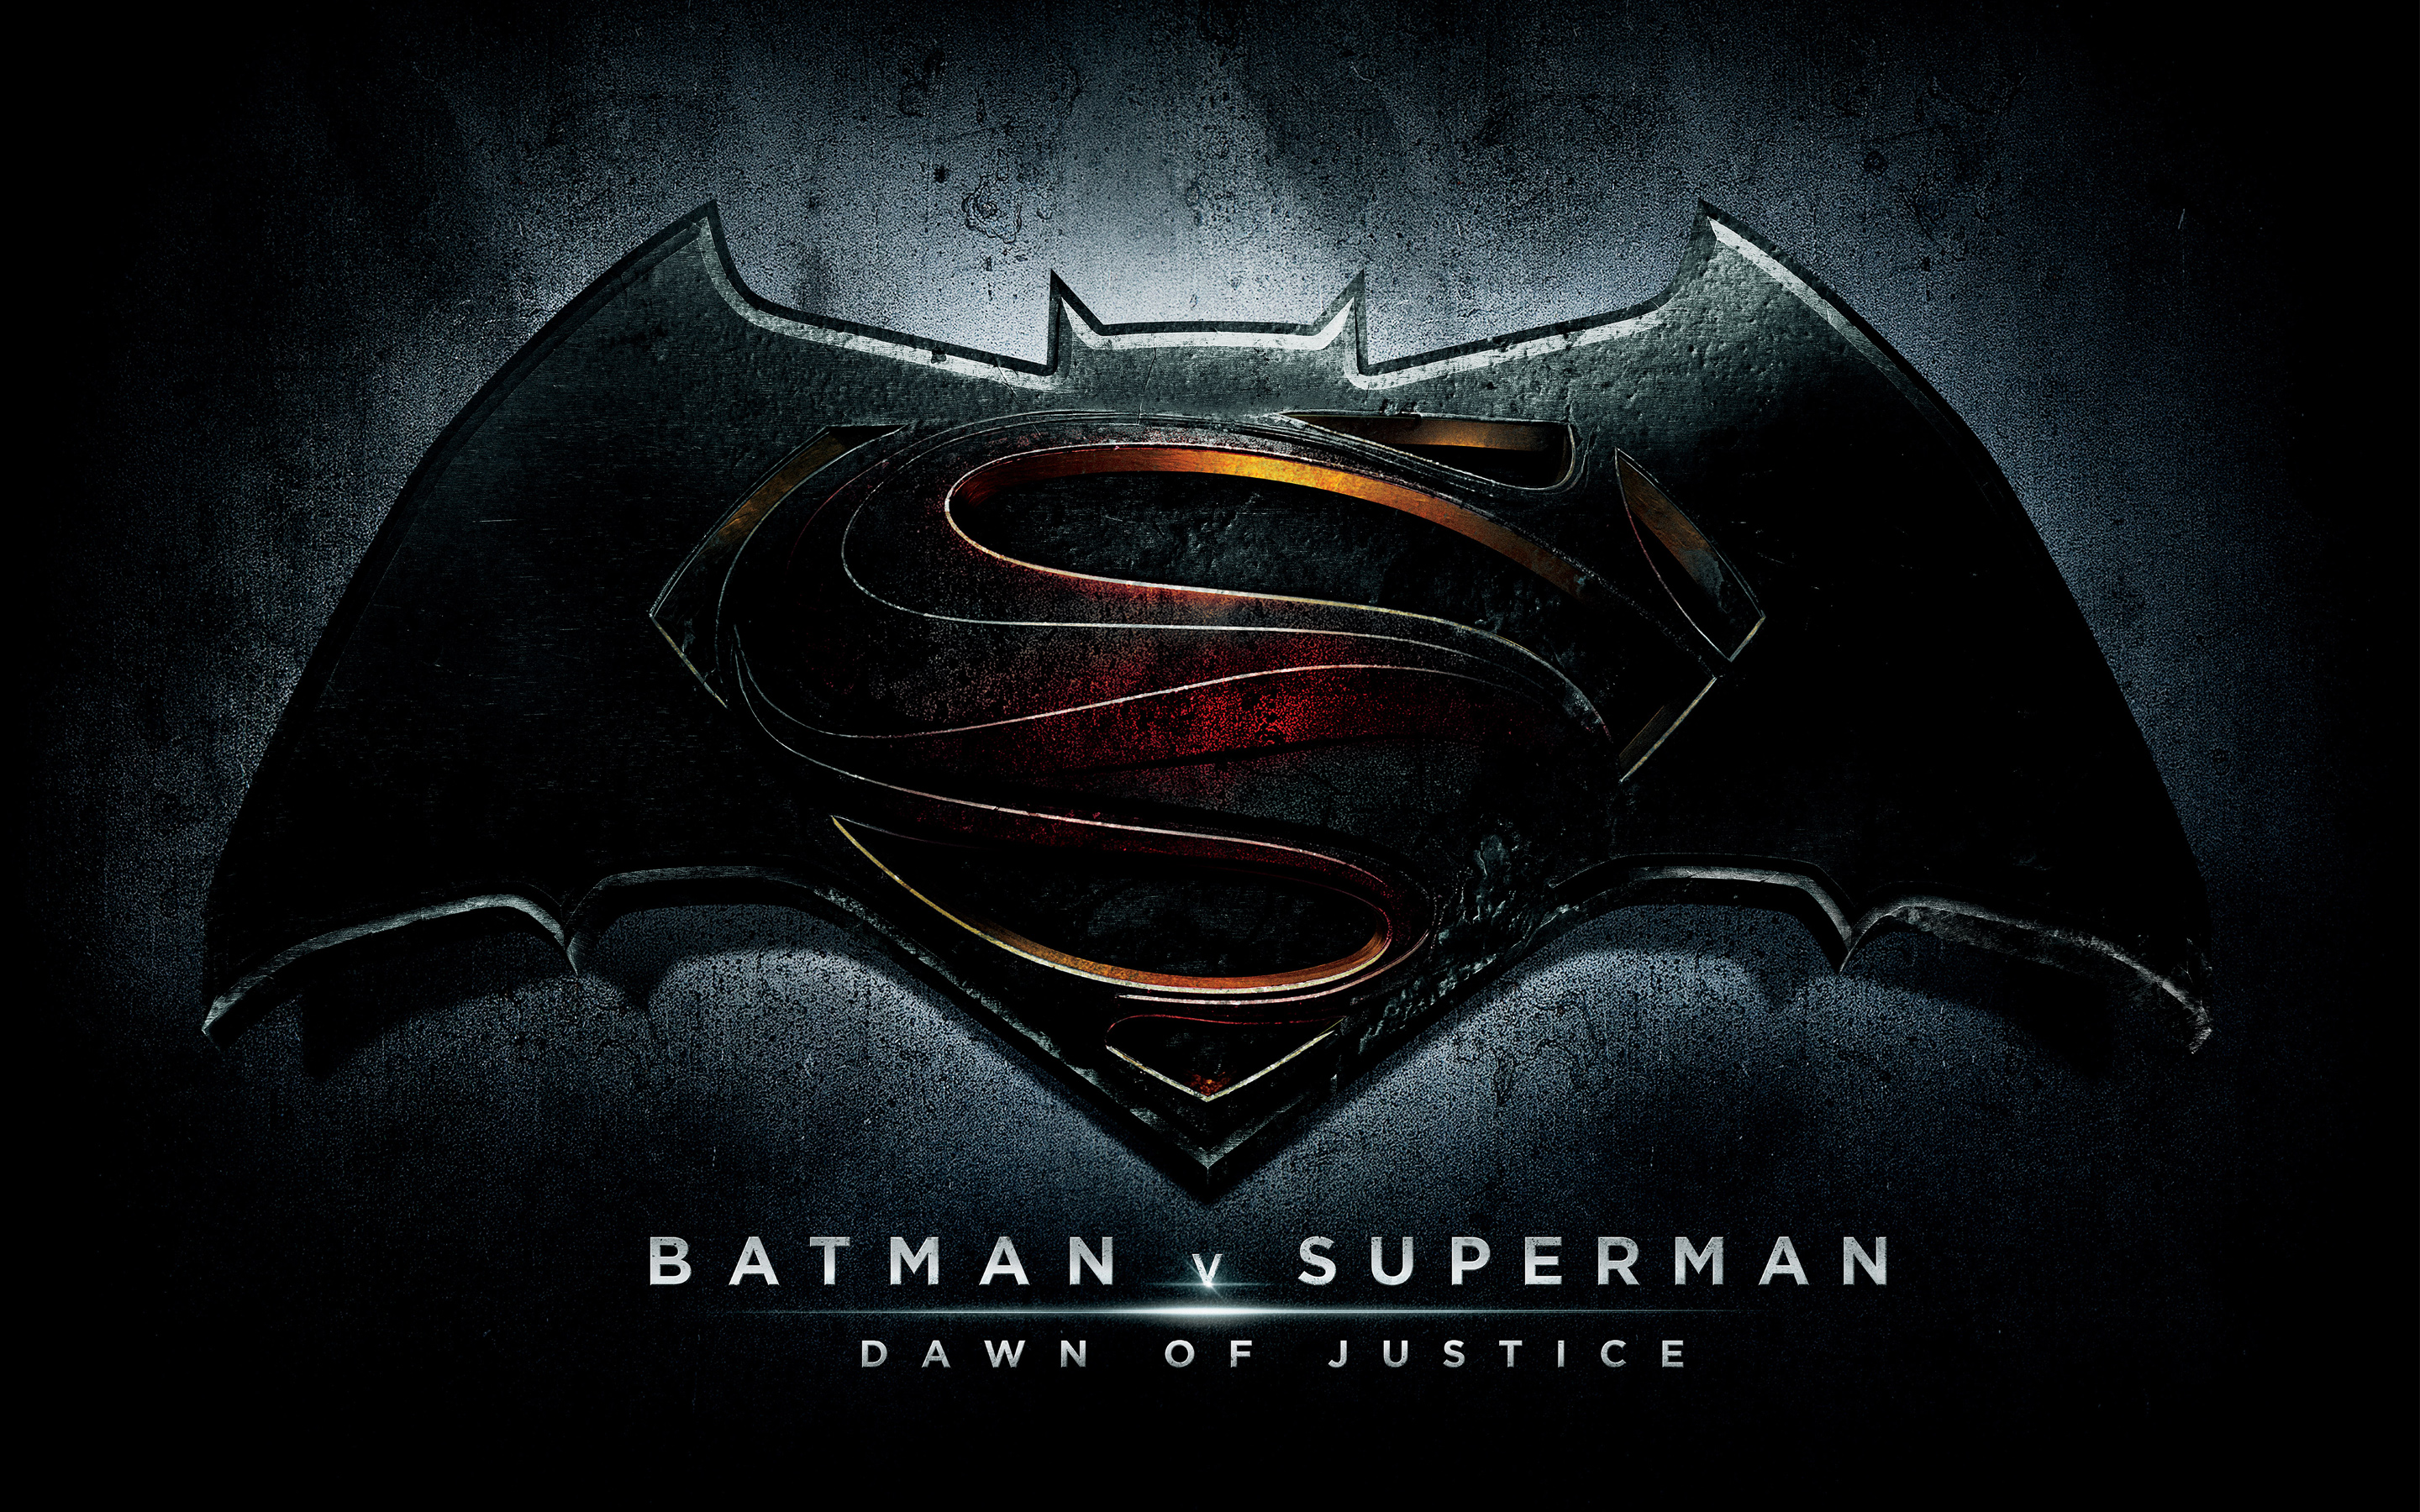 BATMAN VS SUPERMAN WALLPAPERS FREE Wallpapers Background images 2880x1800